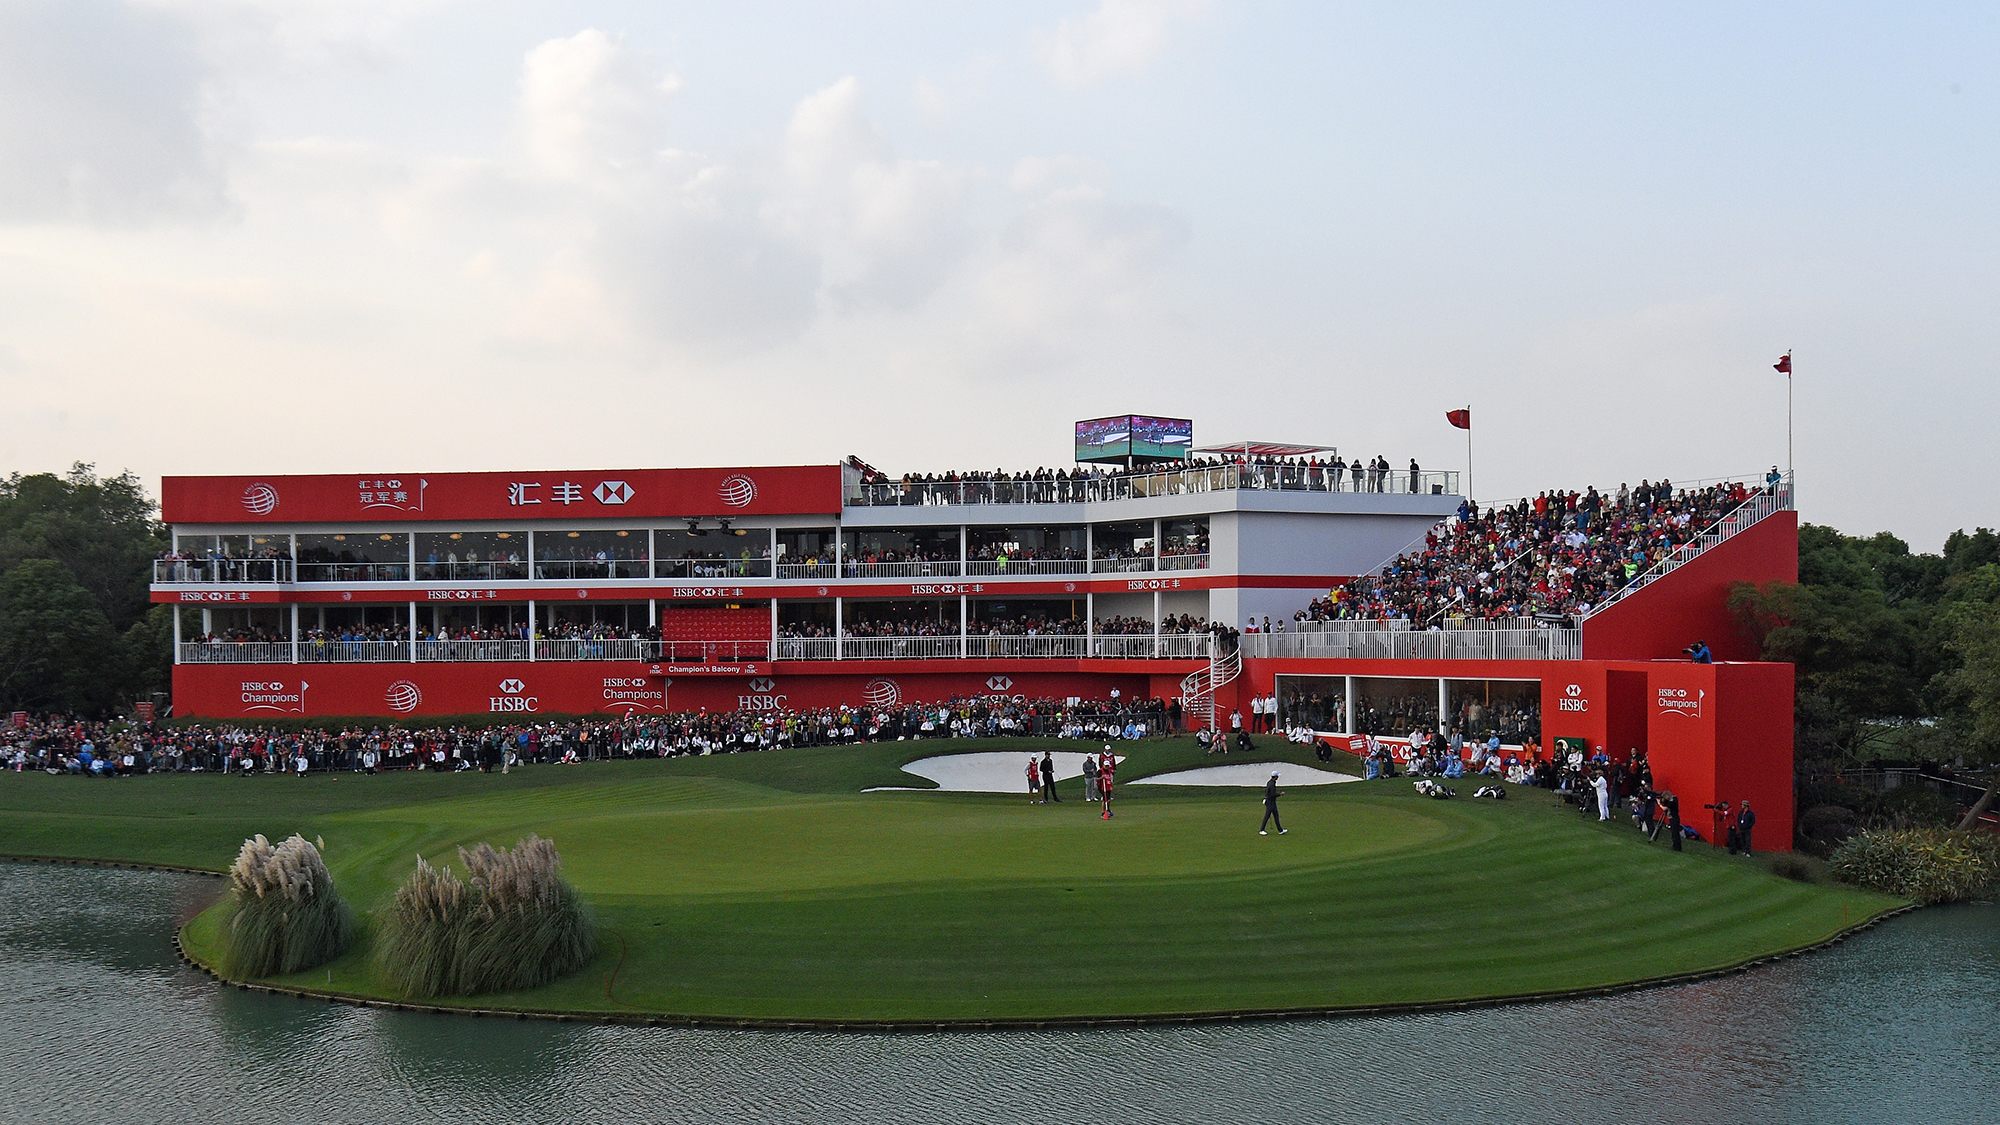 HSBC WGC Champions preview